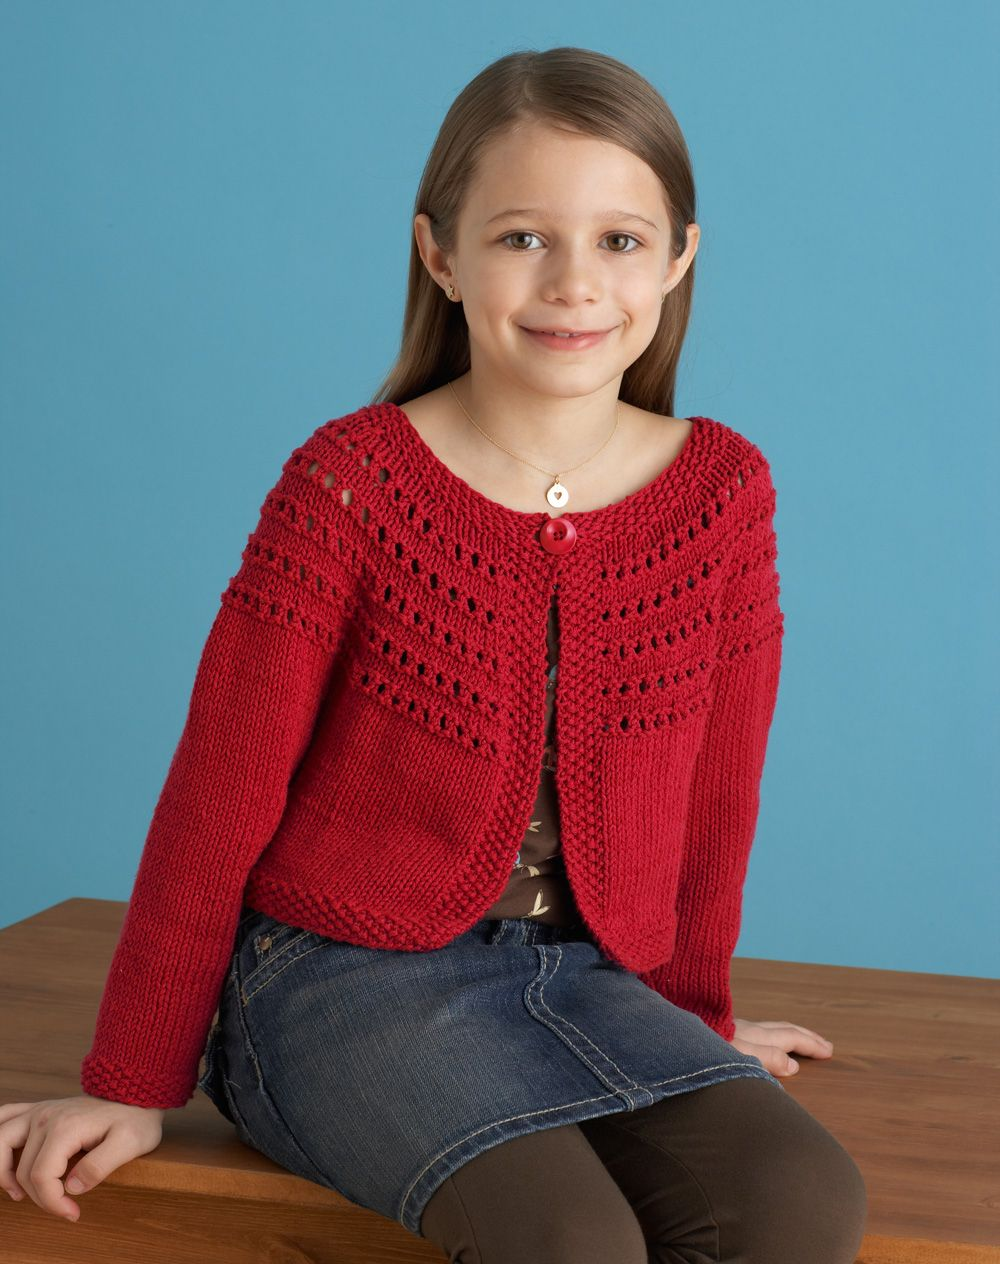 Knitting Cardigan Design : Sweaters hoodies and dresses for kids tweens